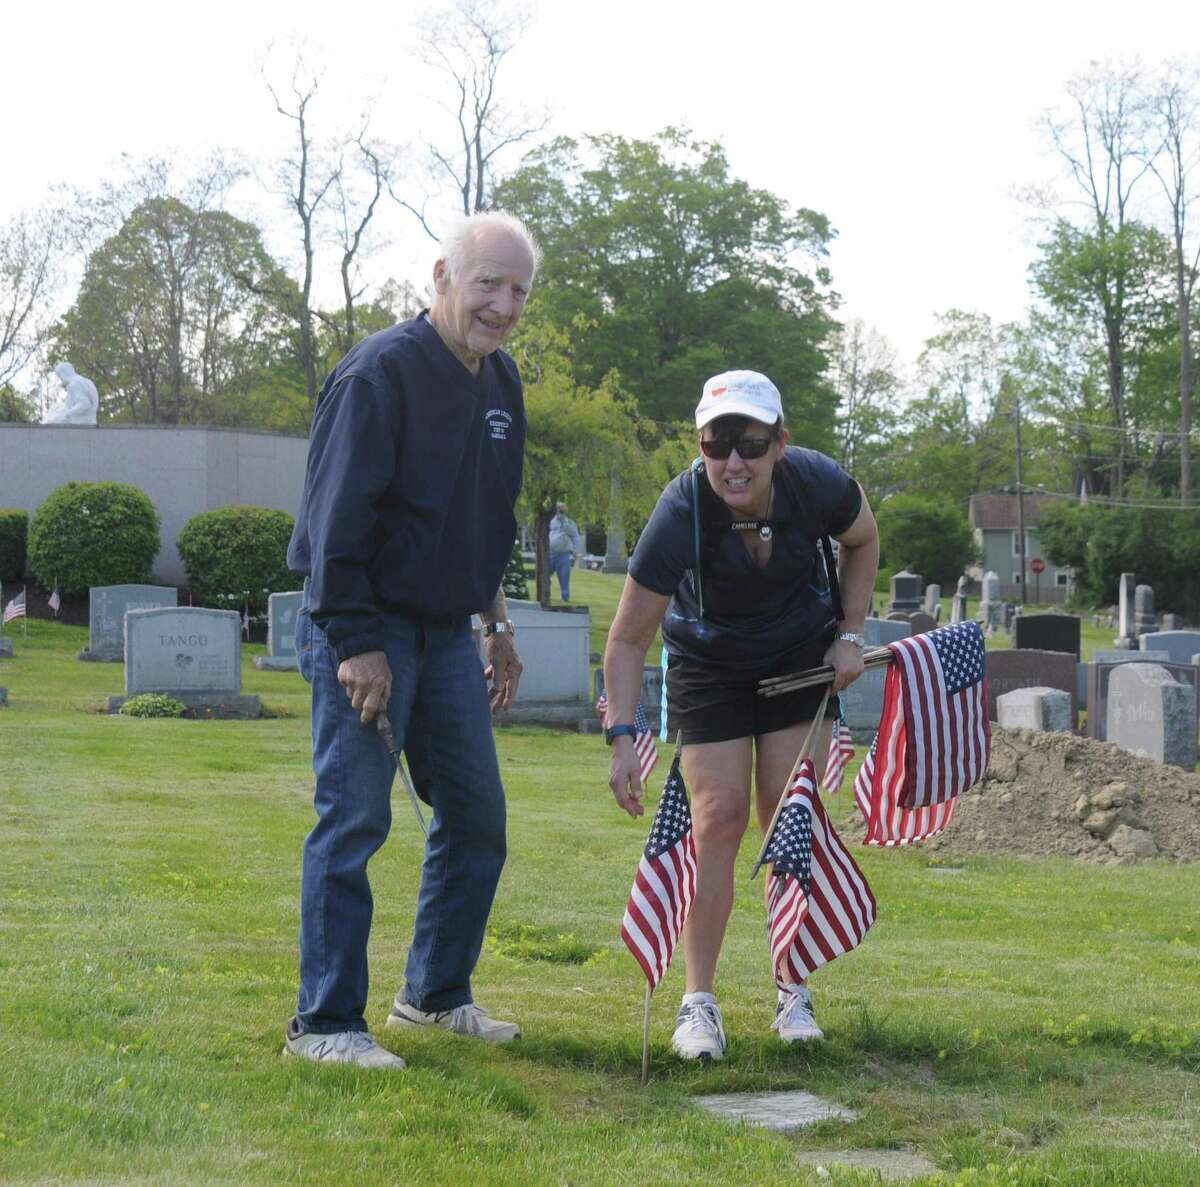 The father-daughter team of Bob and Kathy Tulipani worked in St. Mary's Cemetery, setting out flags to honor veterans graves.